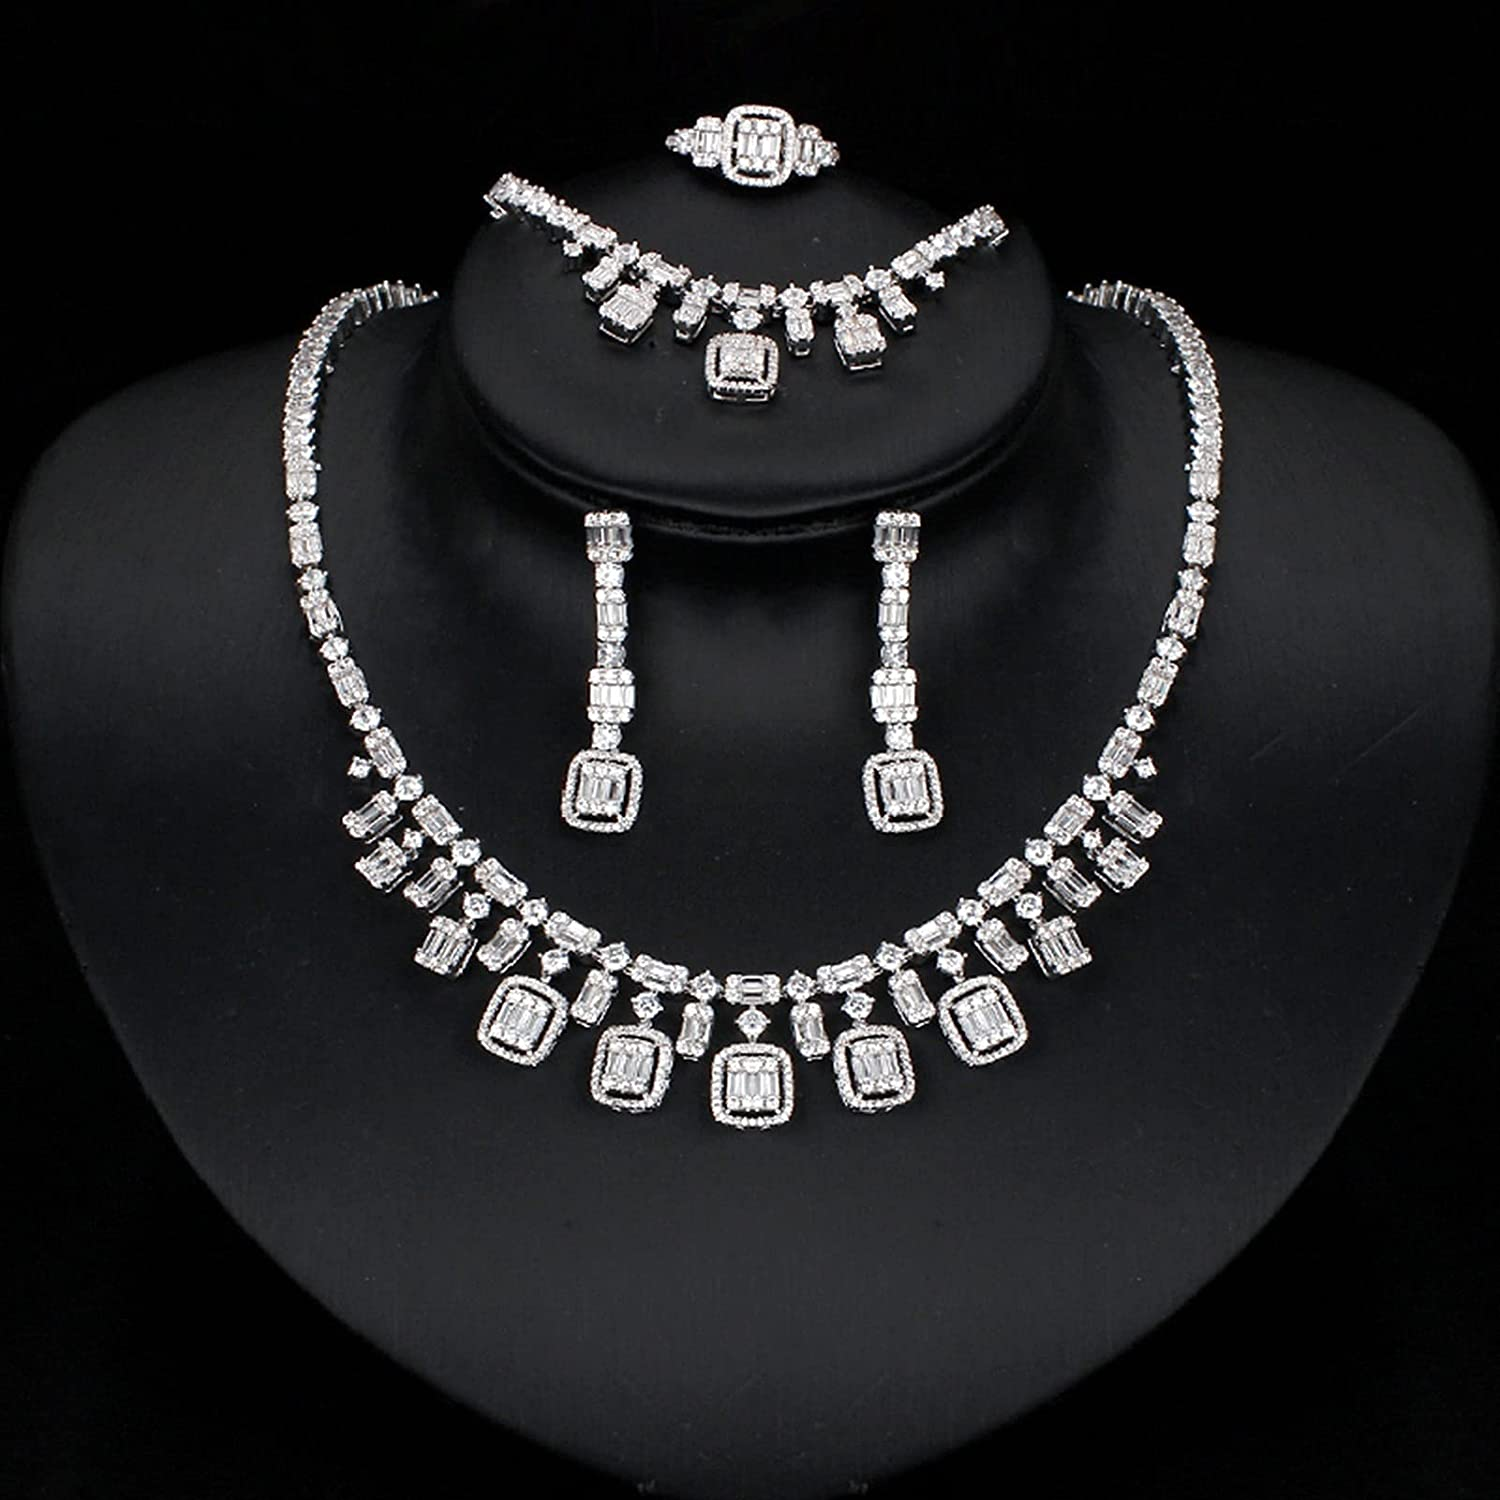 SYXMSM Al sold out. Jewellery Set 4PCS BridalZirconia Japan's largest assortment Necklaces Ring Earrings